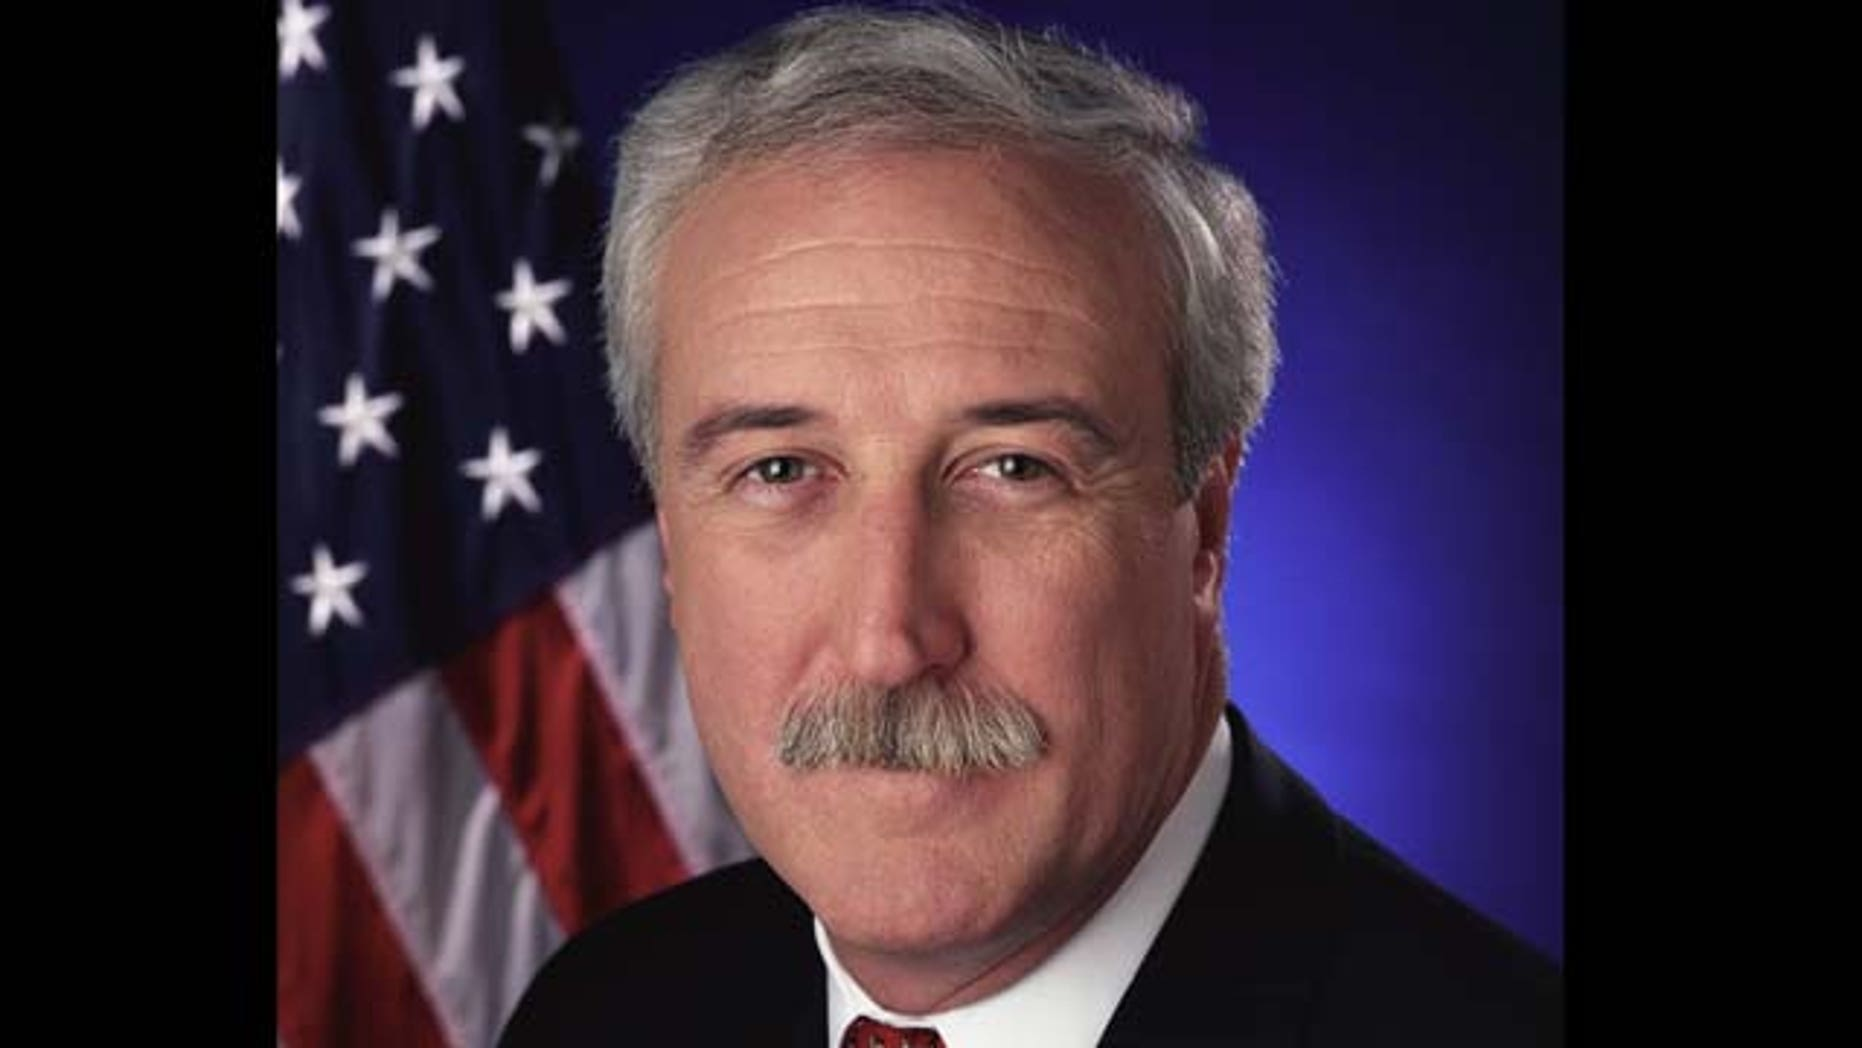 Sean O'Keefe, former NASA administrator and United States Secretary of the Navy.